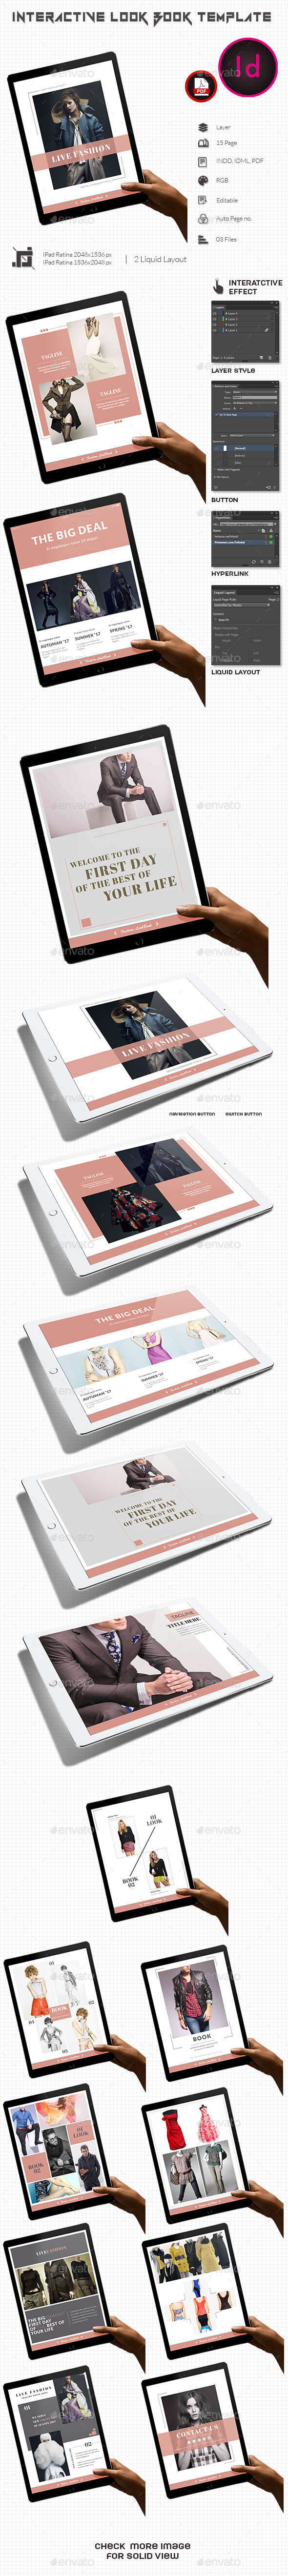 Interactive Look Book Template  - ePublishing